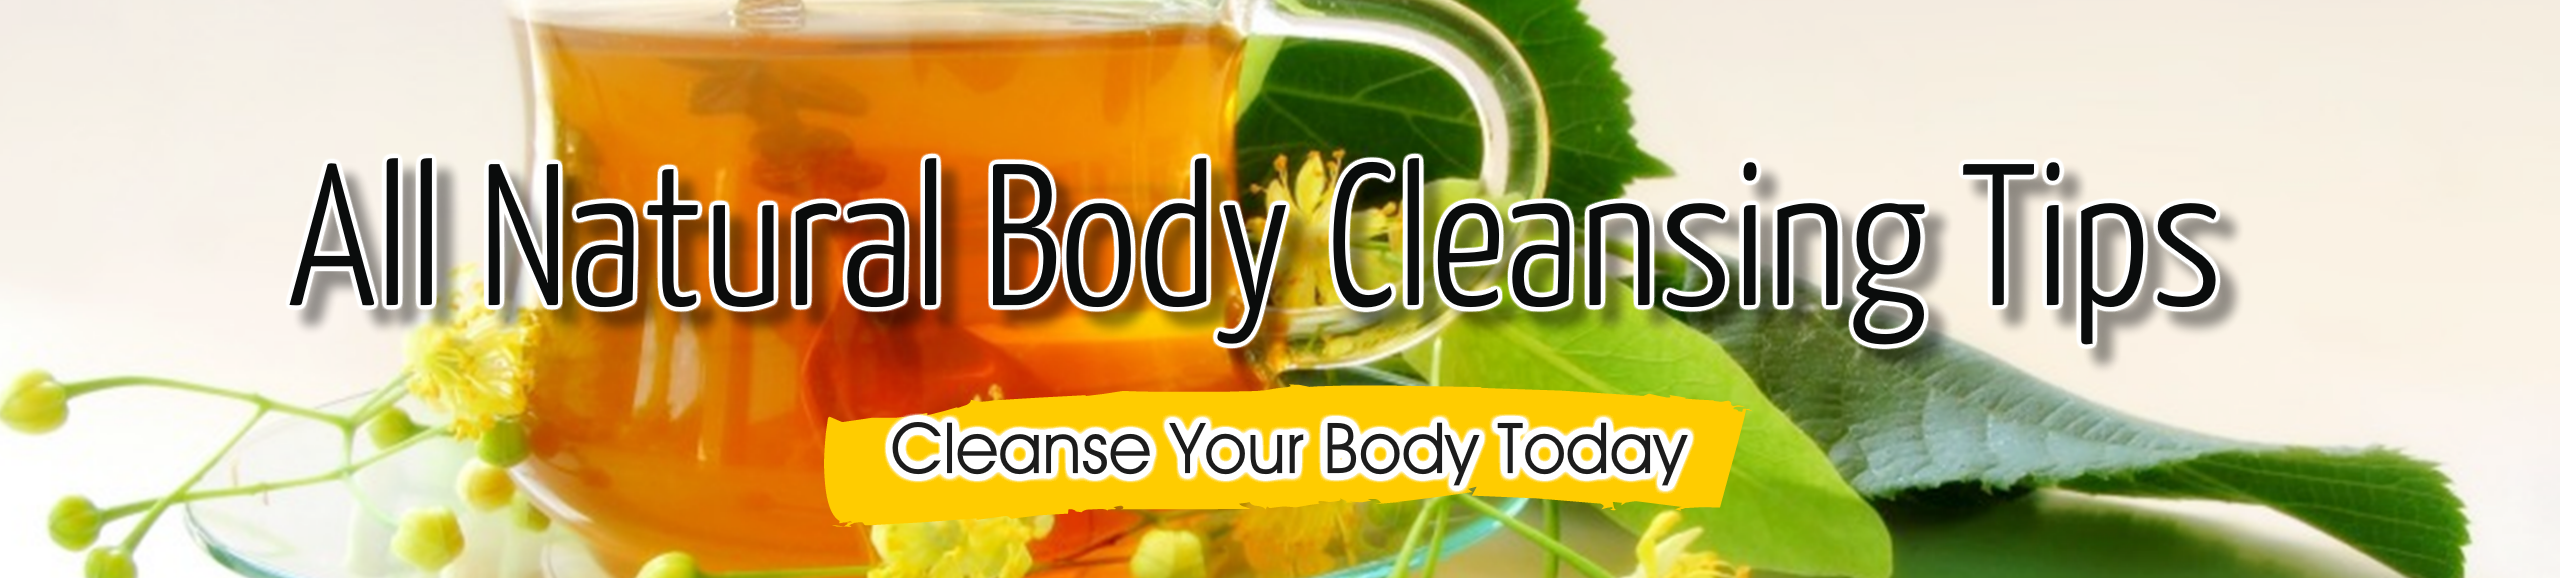 All Natural Body Detox Cleansing